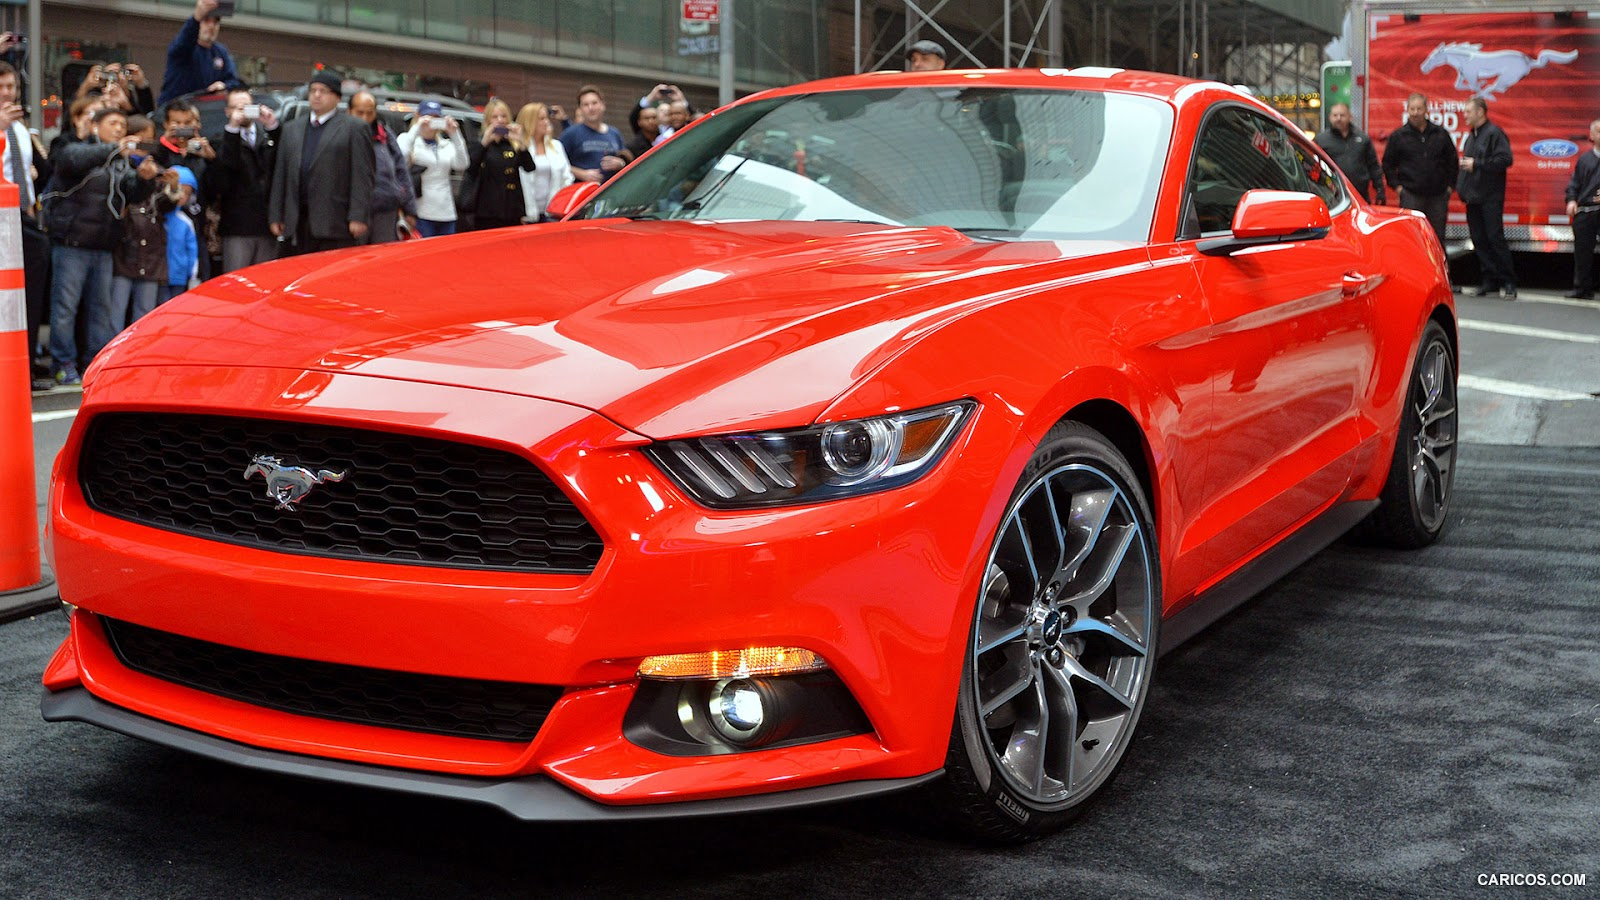 2015 Ford Mustang Gt Car Analytics Engine